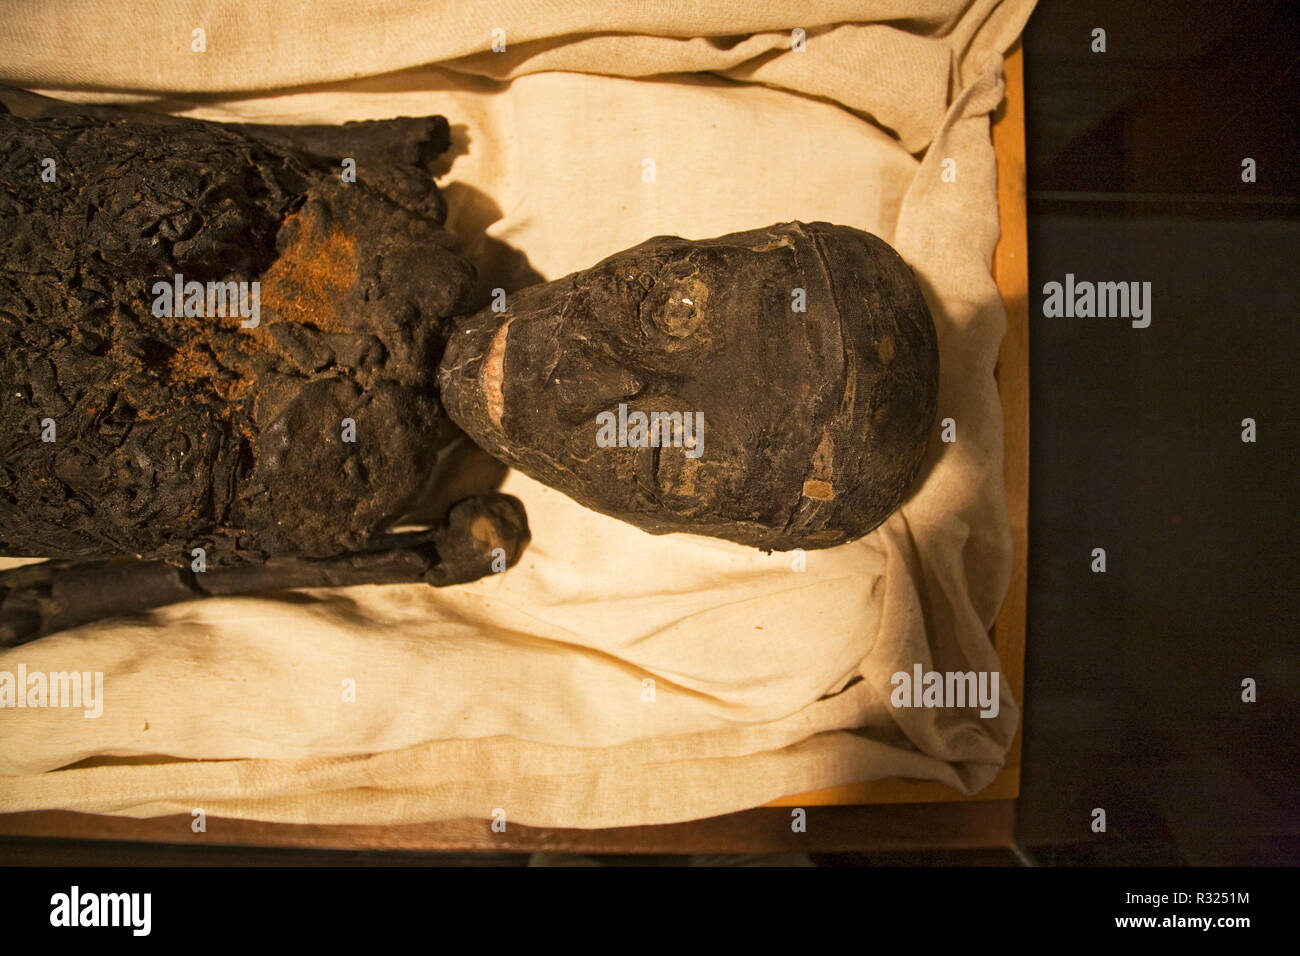 King Tut's mummy, or King tutankhamun's mummy, found in his tomb in the Valley of the Kings, Egypt. - Stock Image